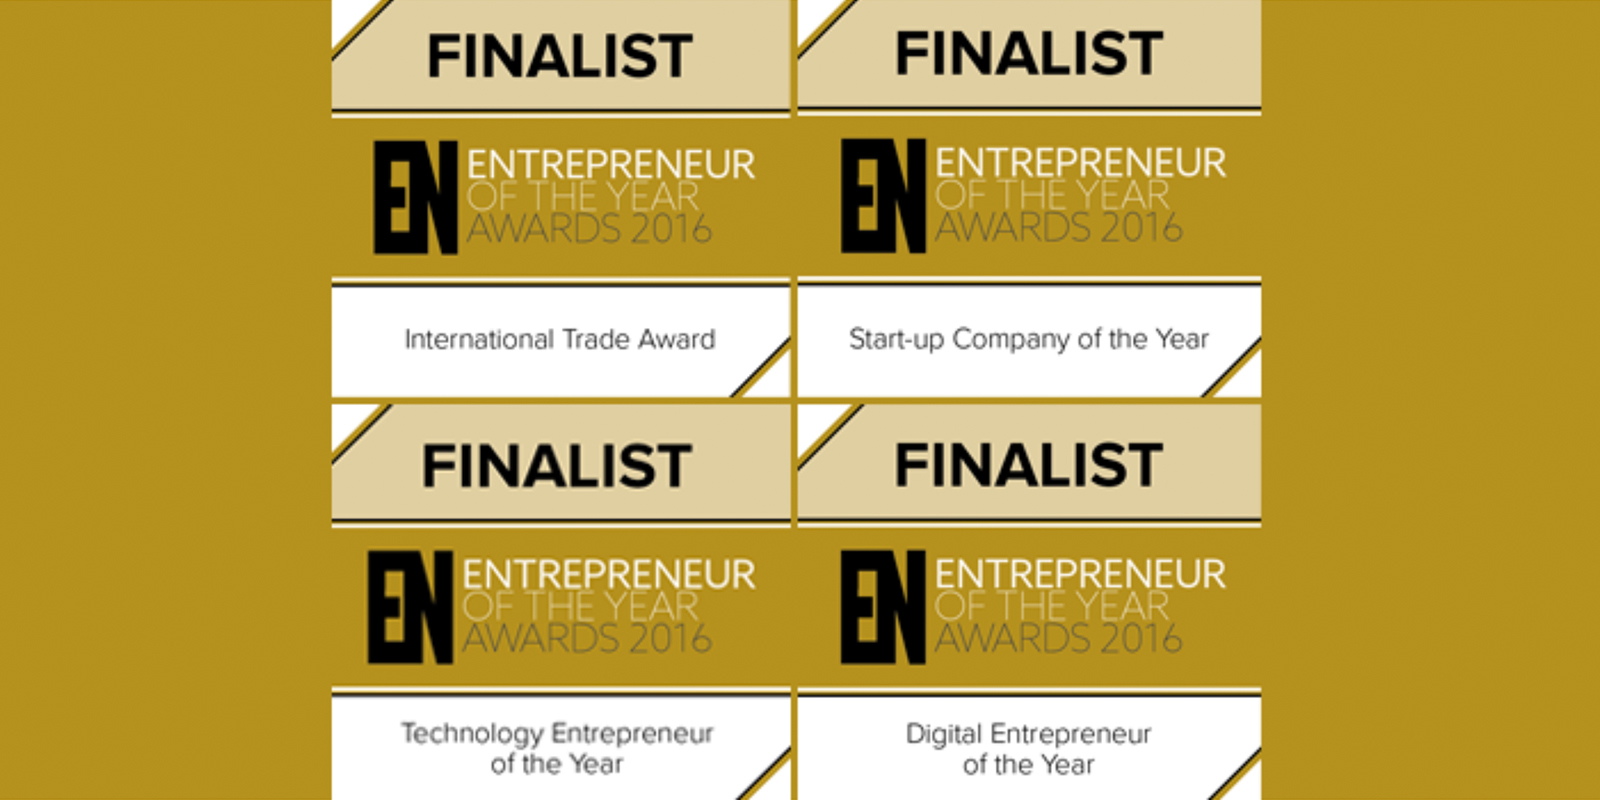 North West Entrepreneur of the Year Awards Finalist